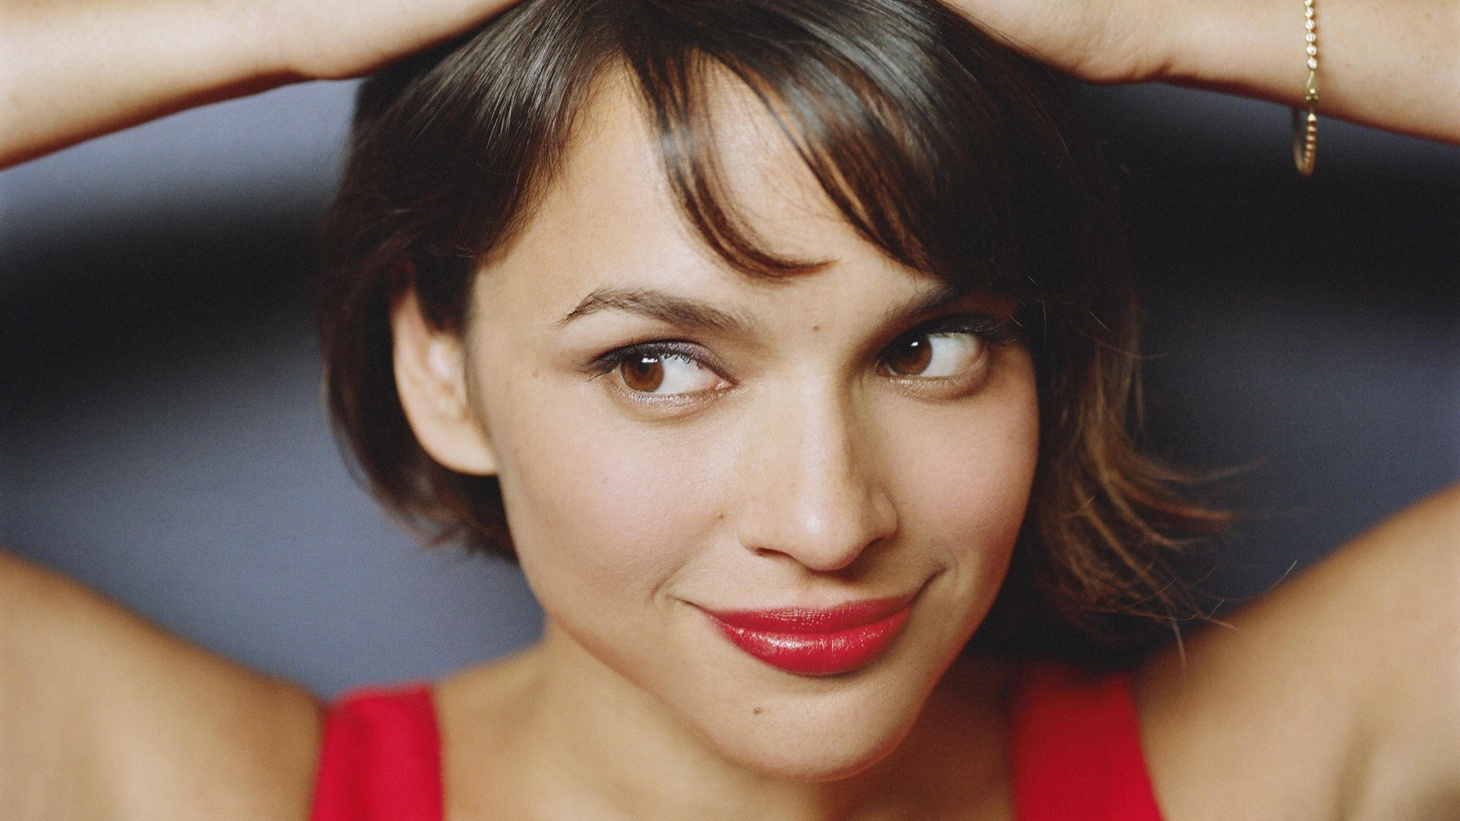 KCRW championed Norah Jones early in her career and we're proud to say the Grammy-award winning singer made her radio debut here. While she's normally seated at the piano, we're looking forward to her picking up a guitar and rocking out on songs from her latest release, The Fall, on Morning Becomes Eclectic at 11:15am.